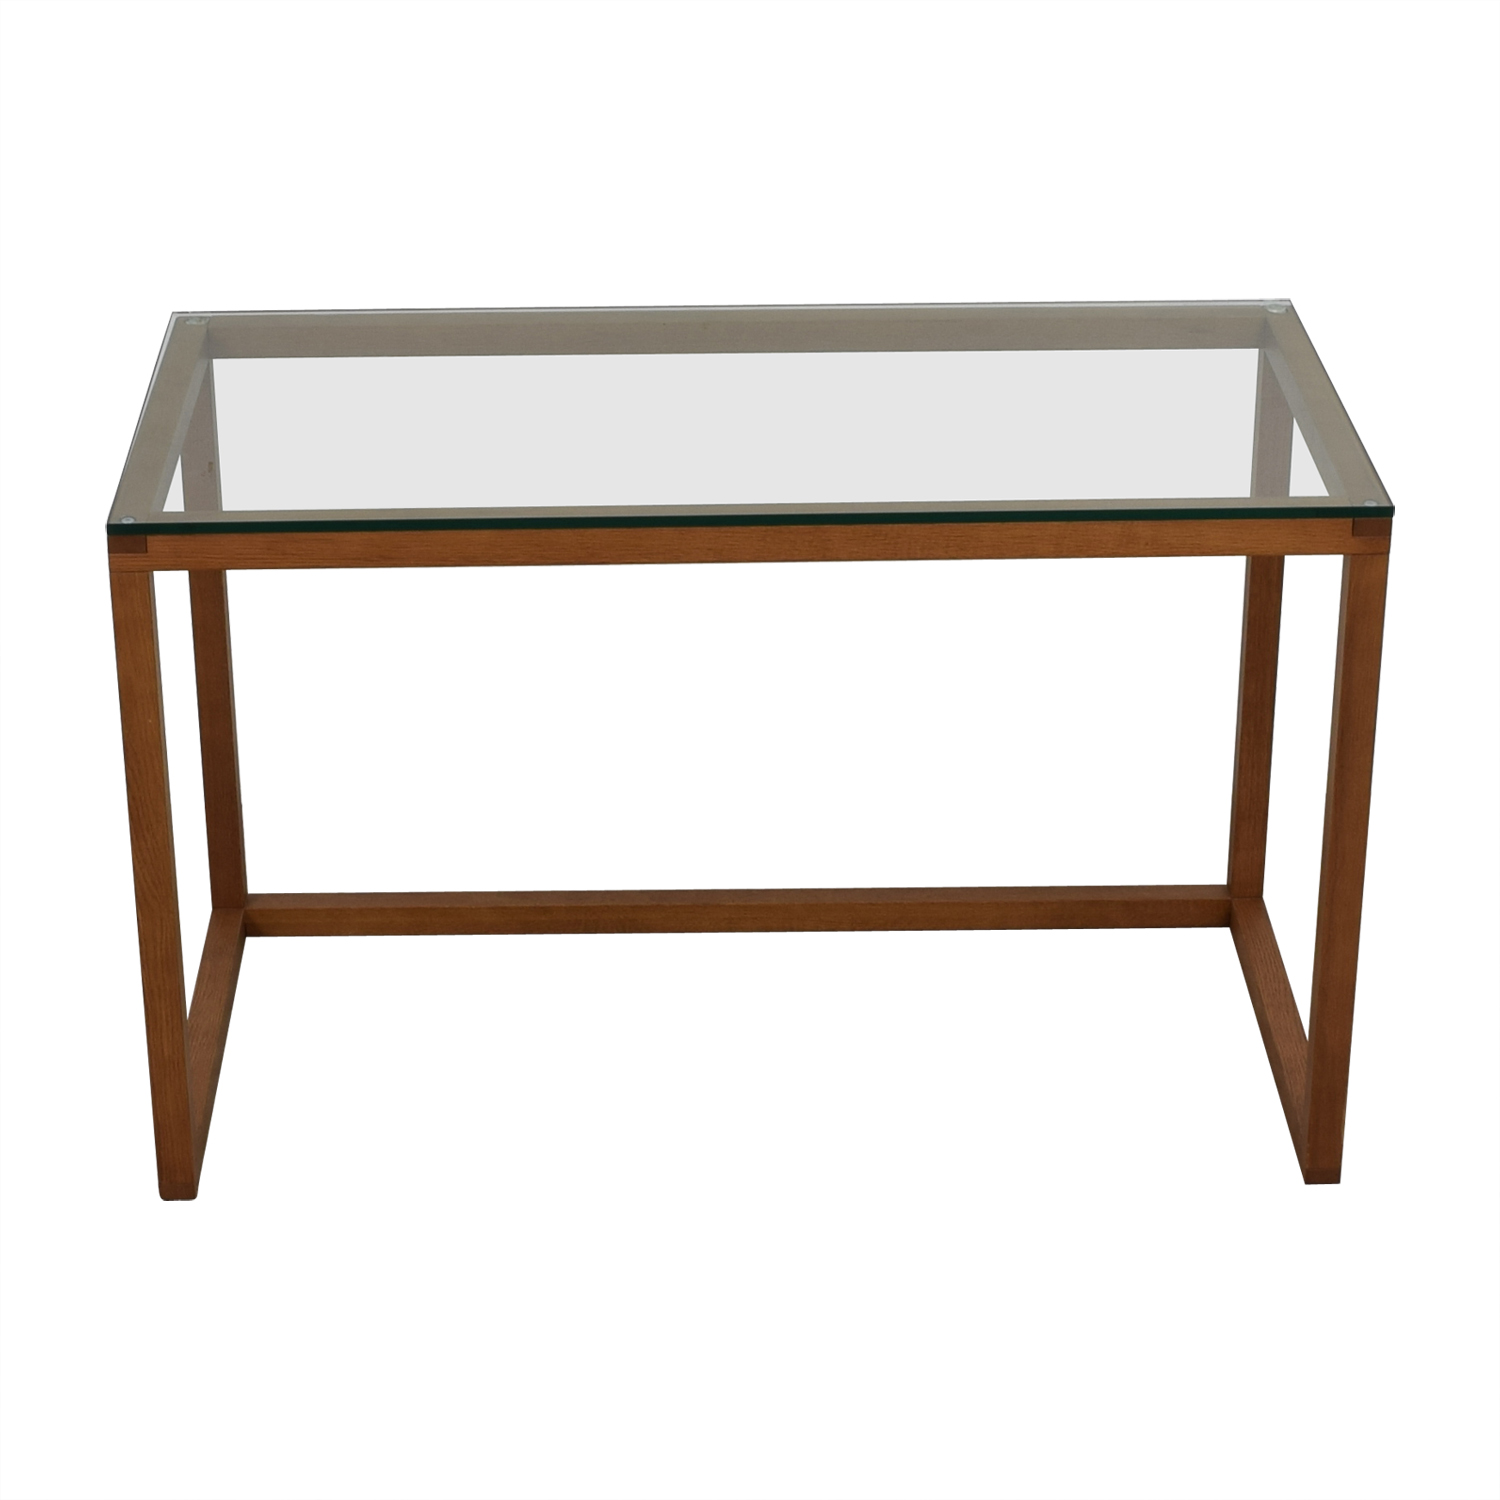 shop Crate & Barrel Glass and Wood  Desk Crate & Barrel